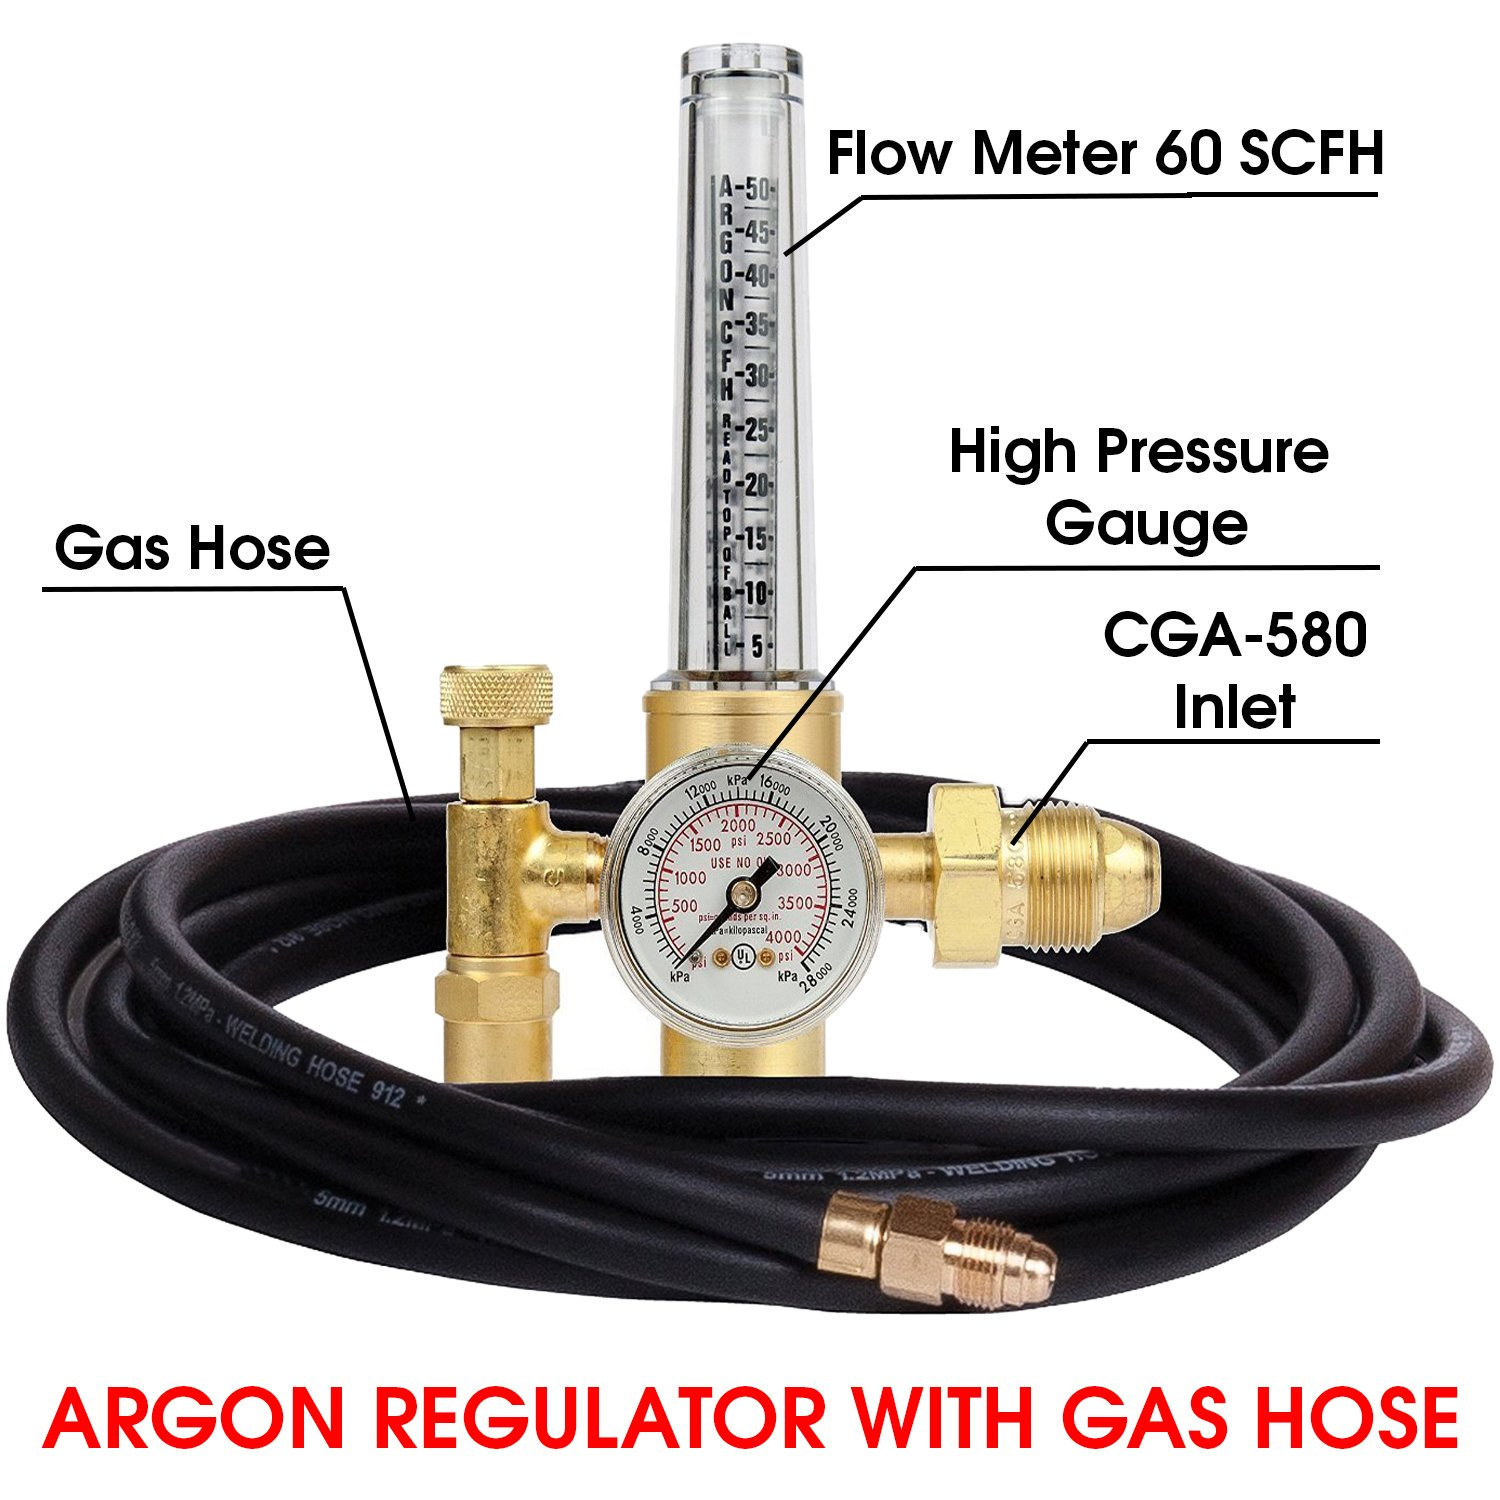 MANATEE Argon Regulator TIG Welder MIG Welding CO2 Flowmeter 10 to 60 CFH - 0 to 4000 psi pressure gauge CGA580 inlet Connection Gas Welder Welding Regulator More Accurate Gas Metering Delivery System by MANATEE